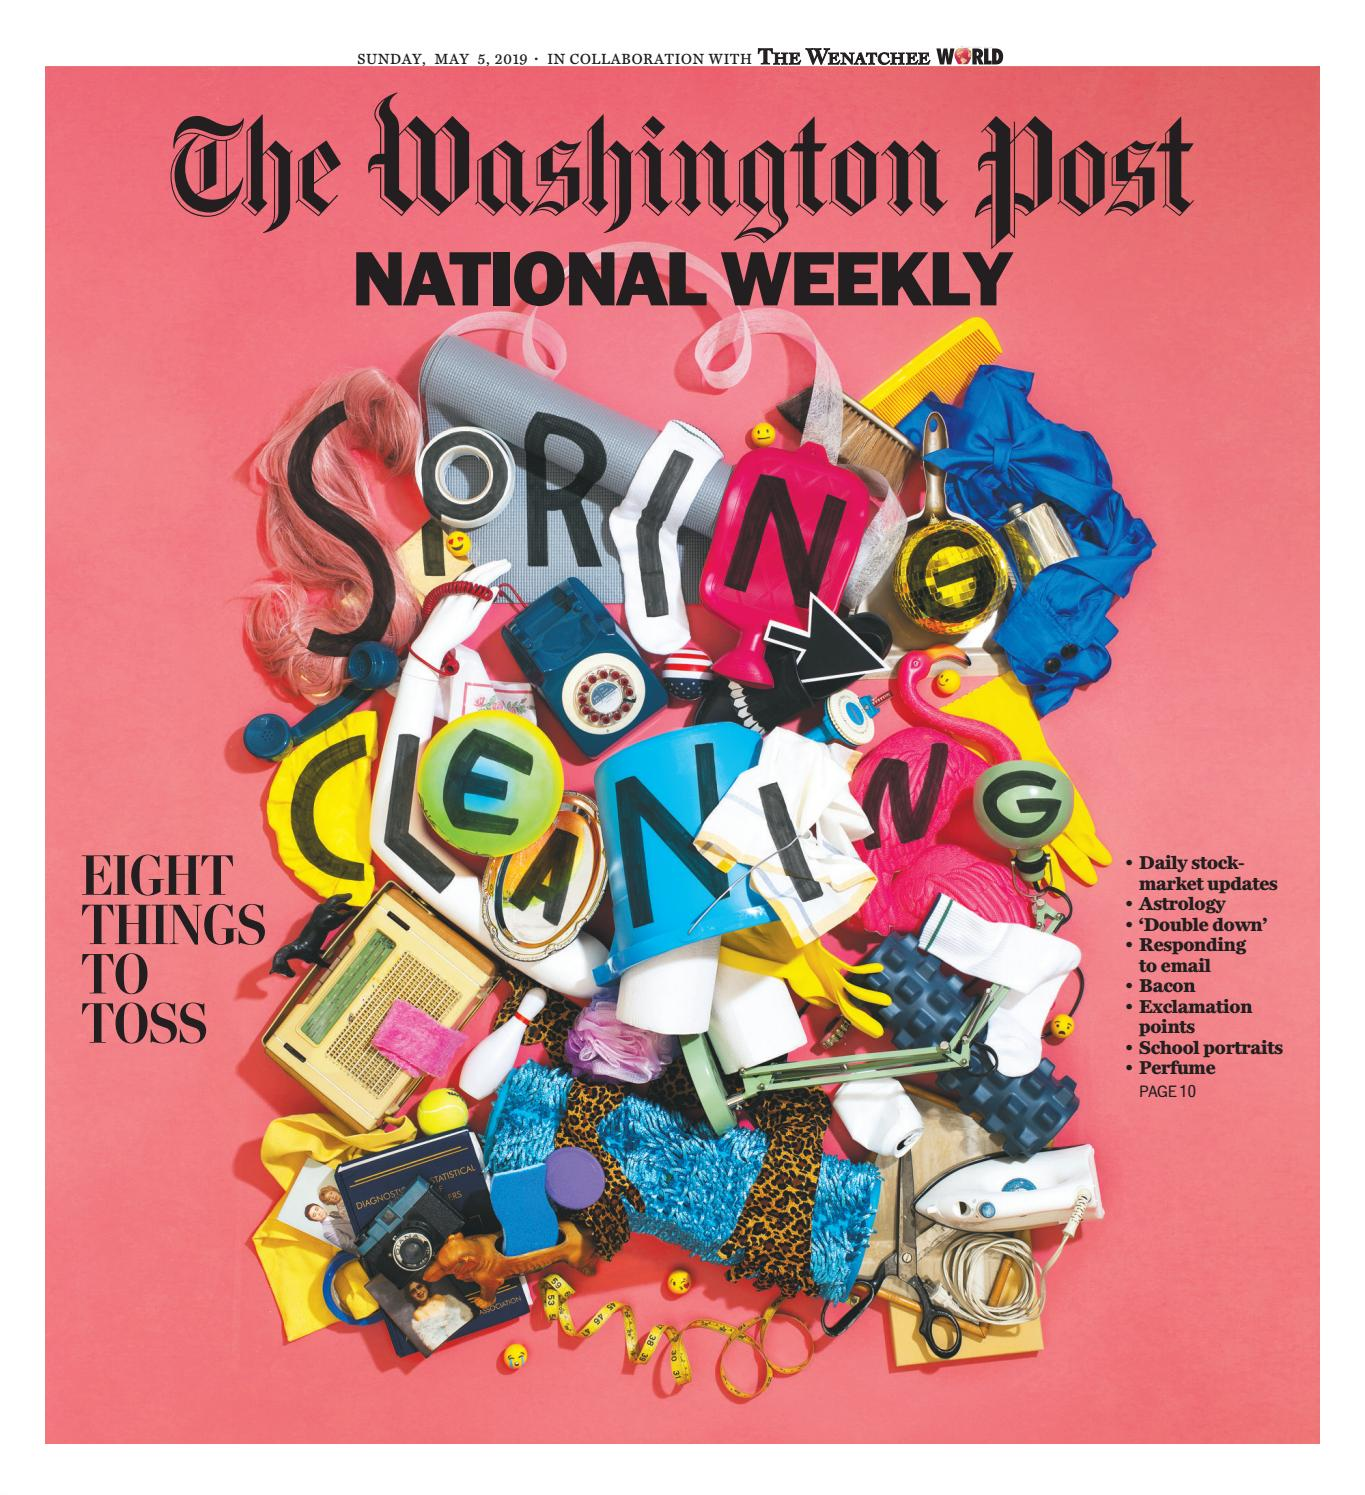 The Washington Post National Weekly - May 5, 2019 by The Wenatchee